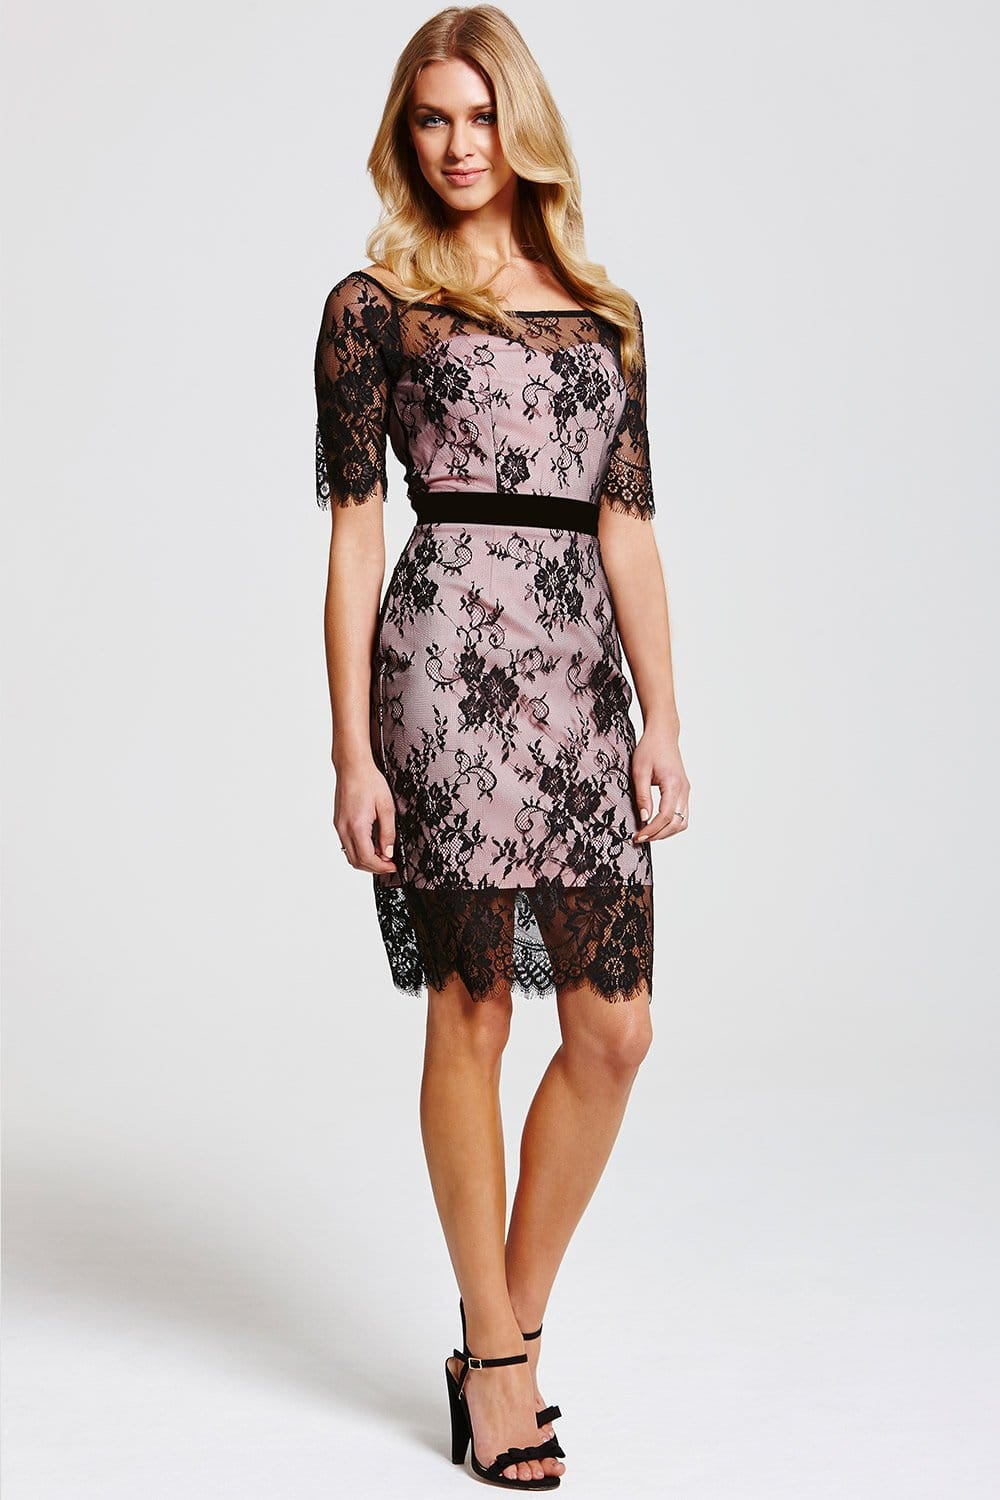 Outlet Paper Dolls Black and Pink Lace Overlay Dress - Outlet ...